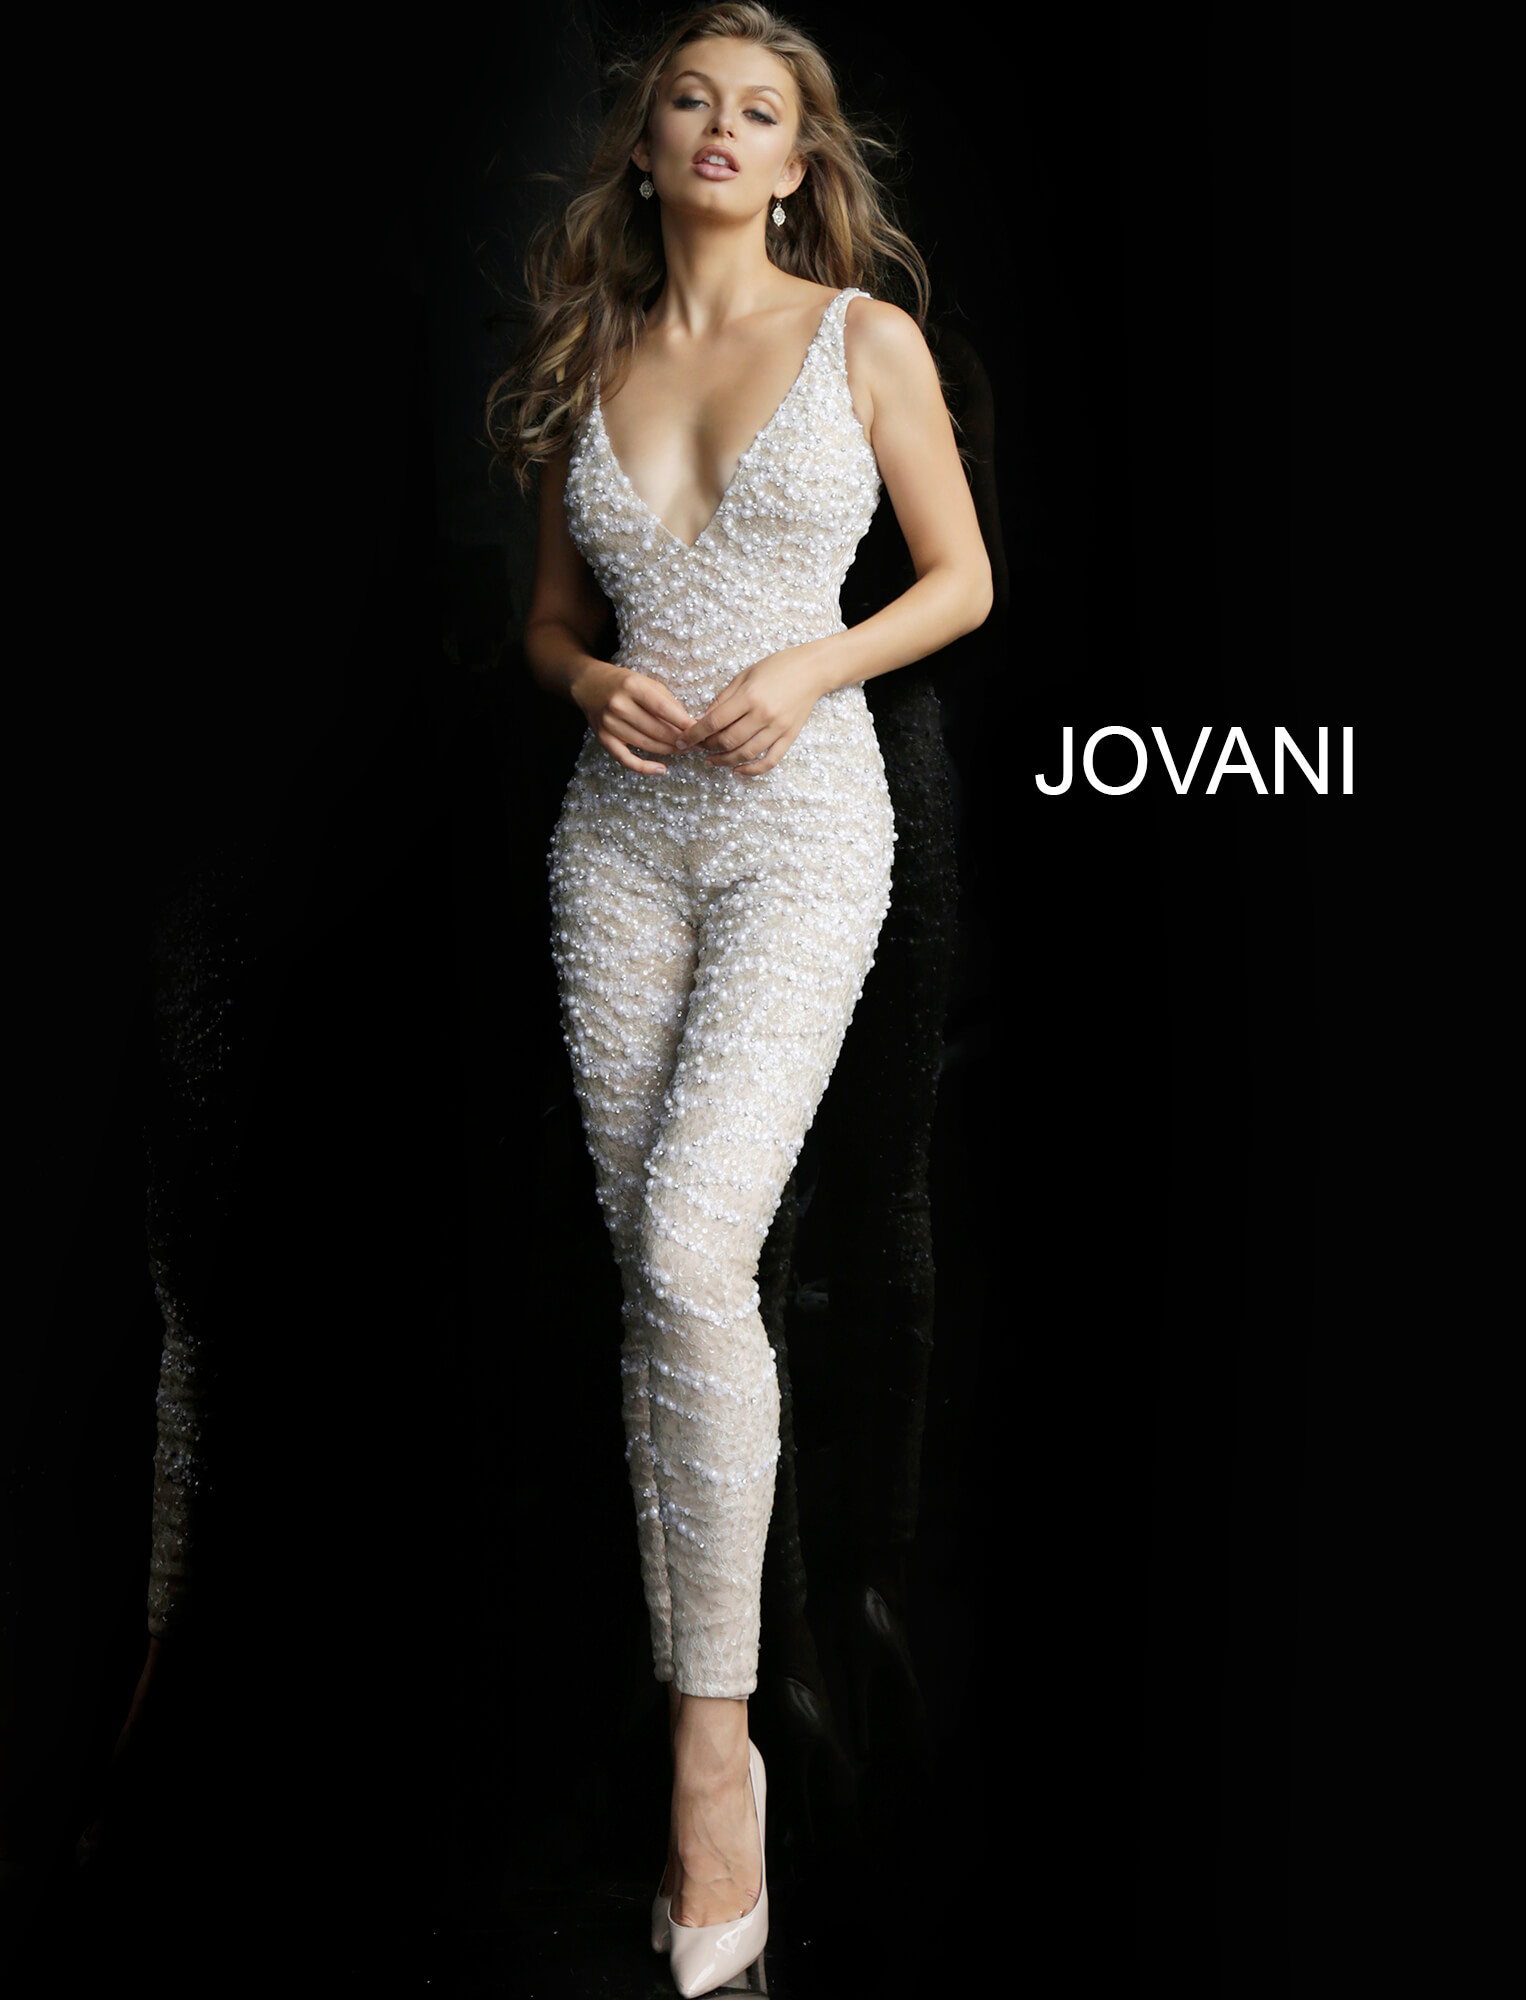 jovani Nude White Plunging Neckline Beaded Prom Jumpsuit 60010